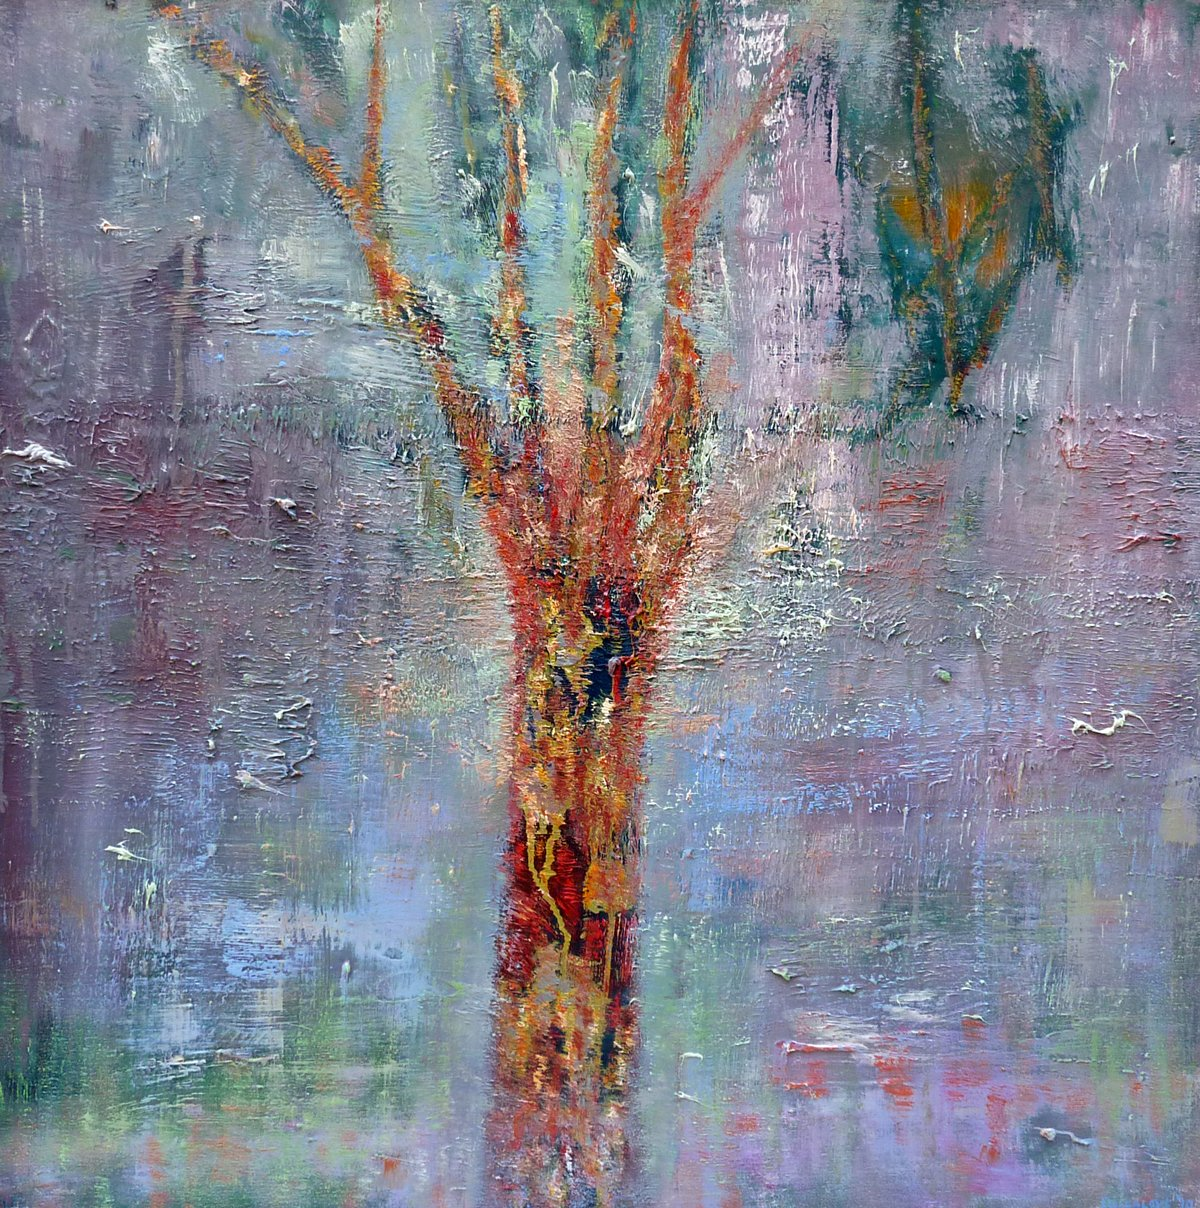 Portrait of a Tree - Oil on Canvas - 81cm x 81cm